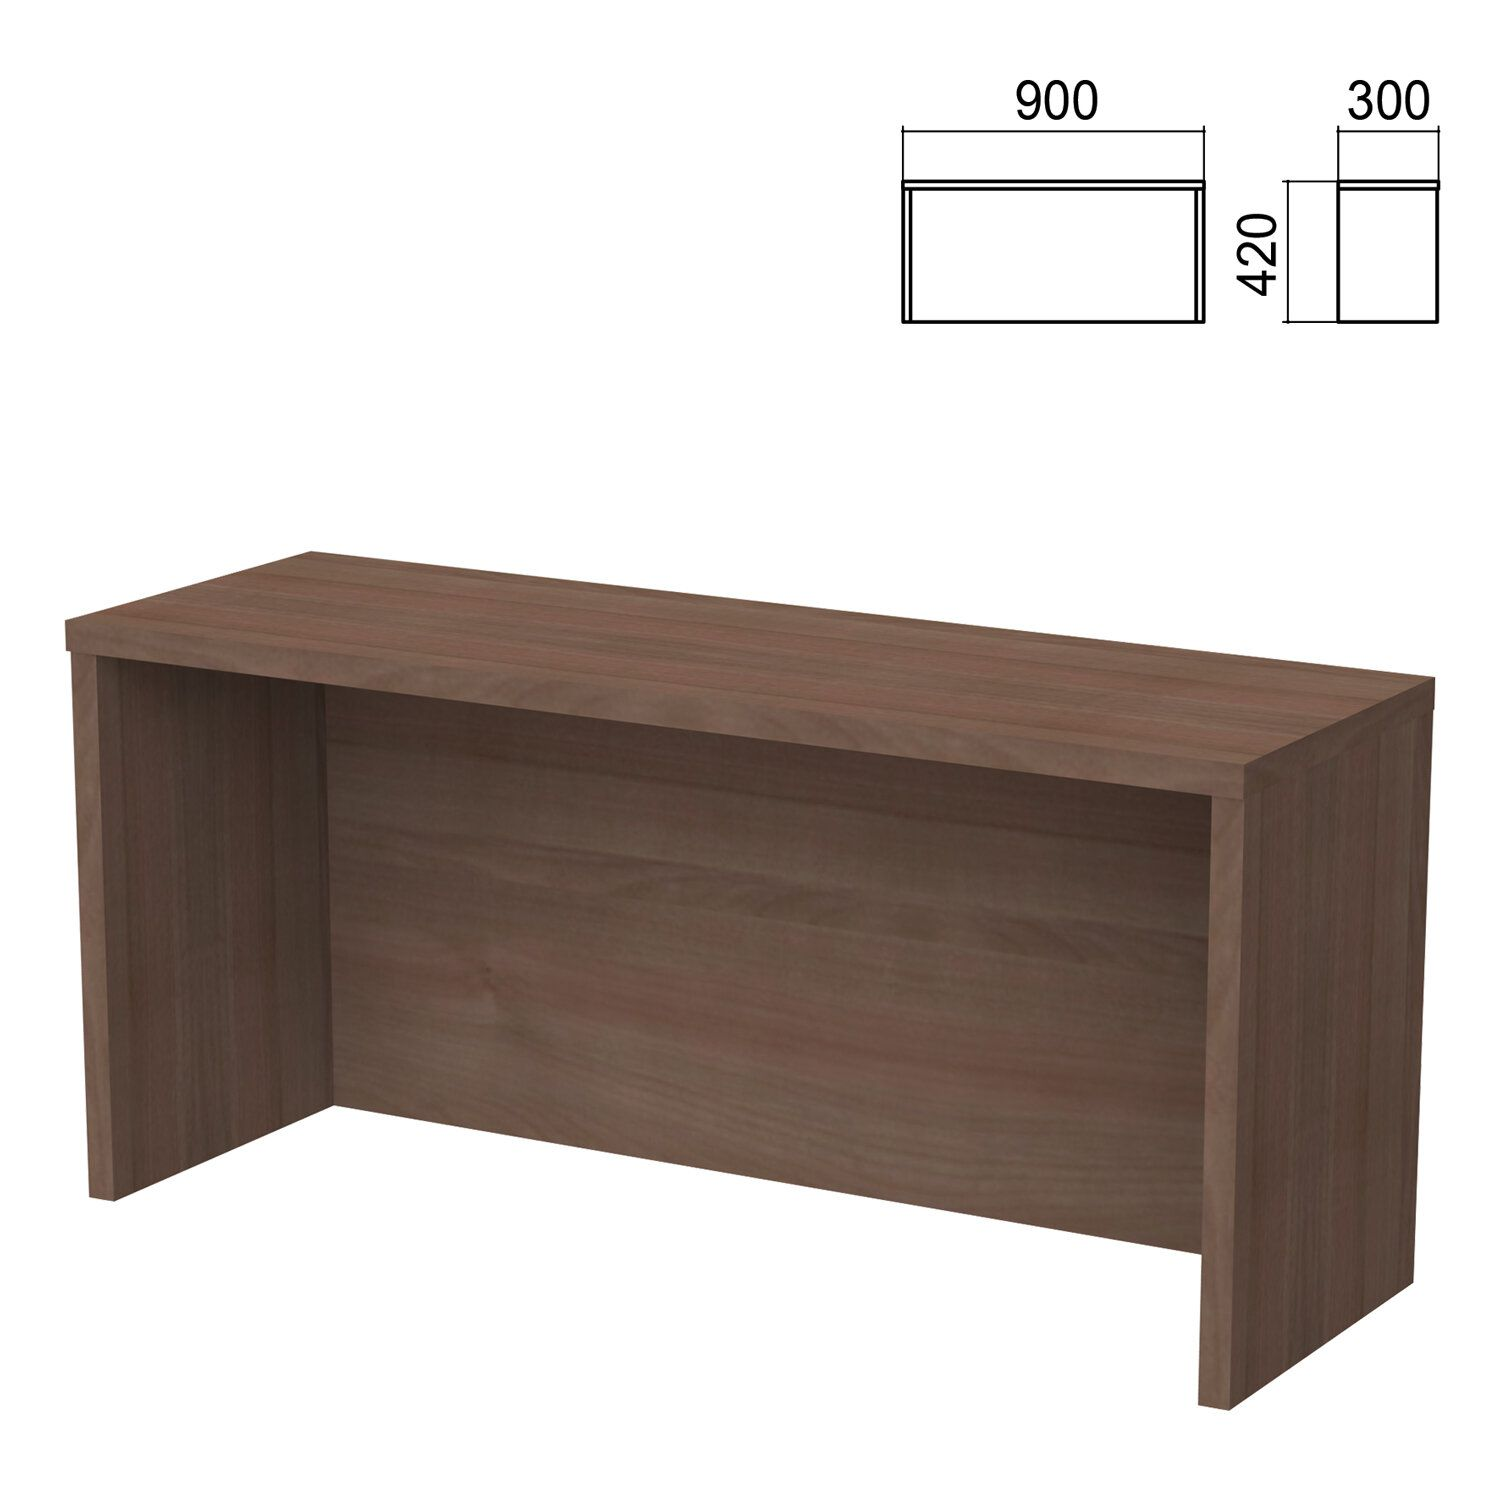 Argo table add-on, 900 mm wide, garbo